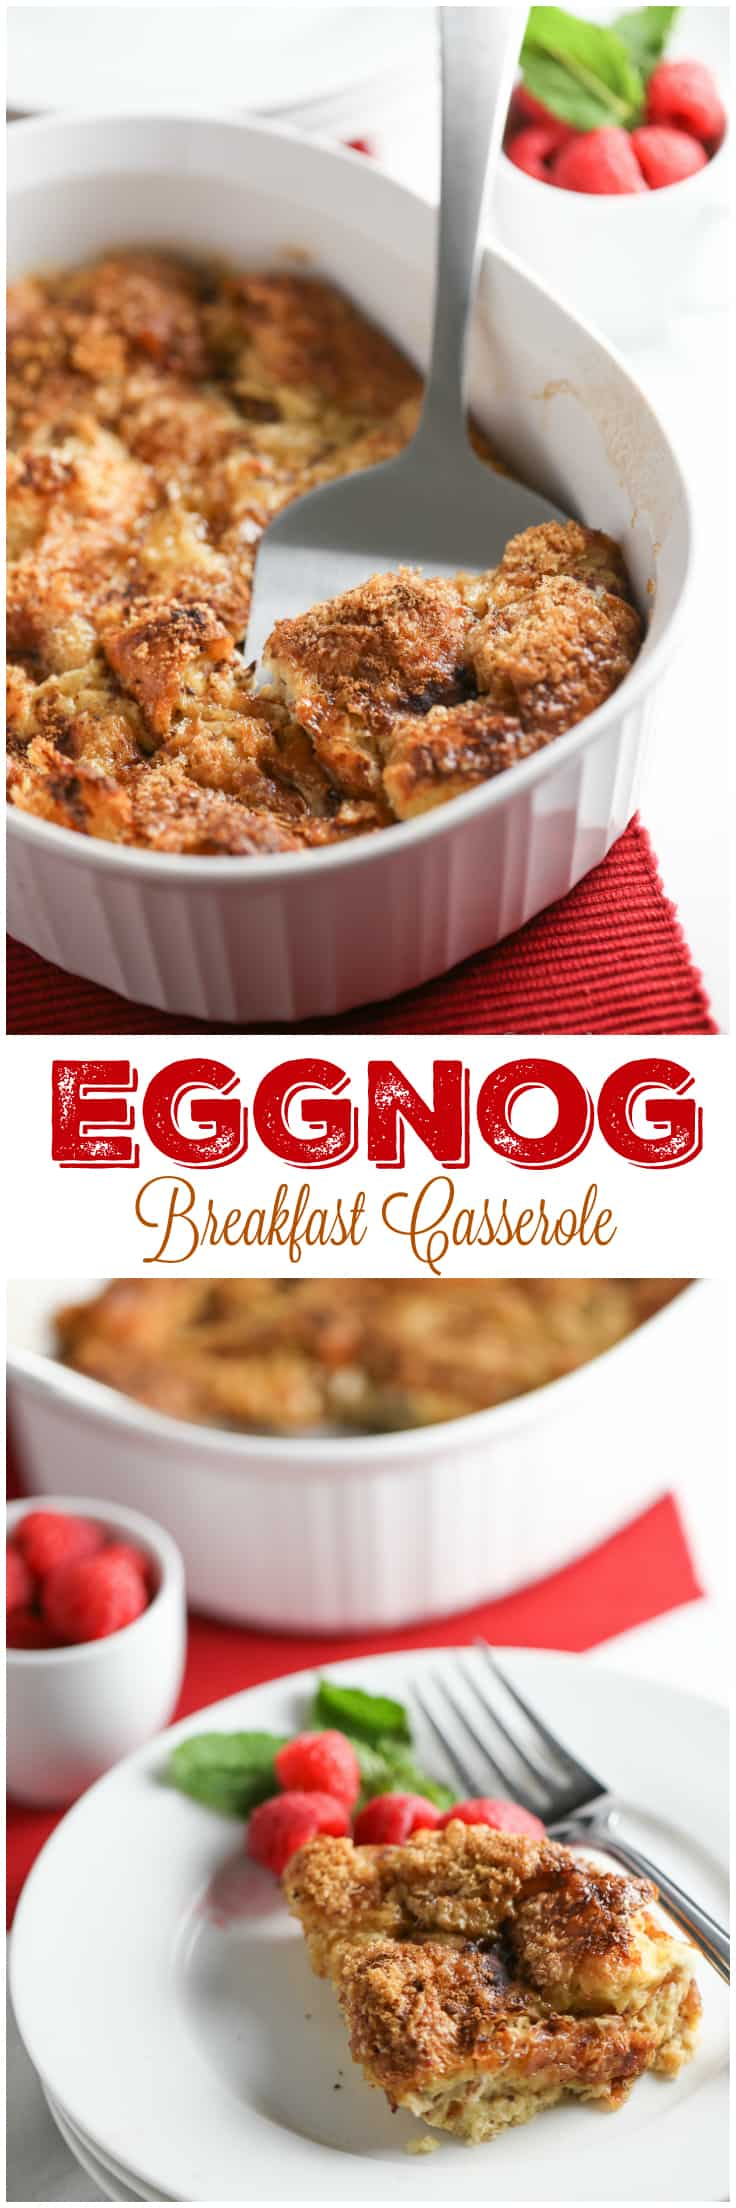 Eggnog Breakfast Casserole - make this recipe on Christmas morning!